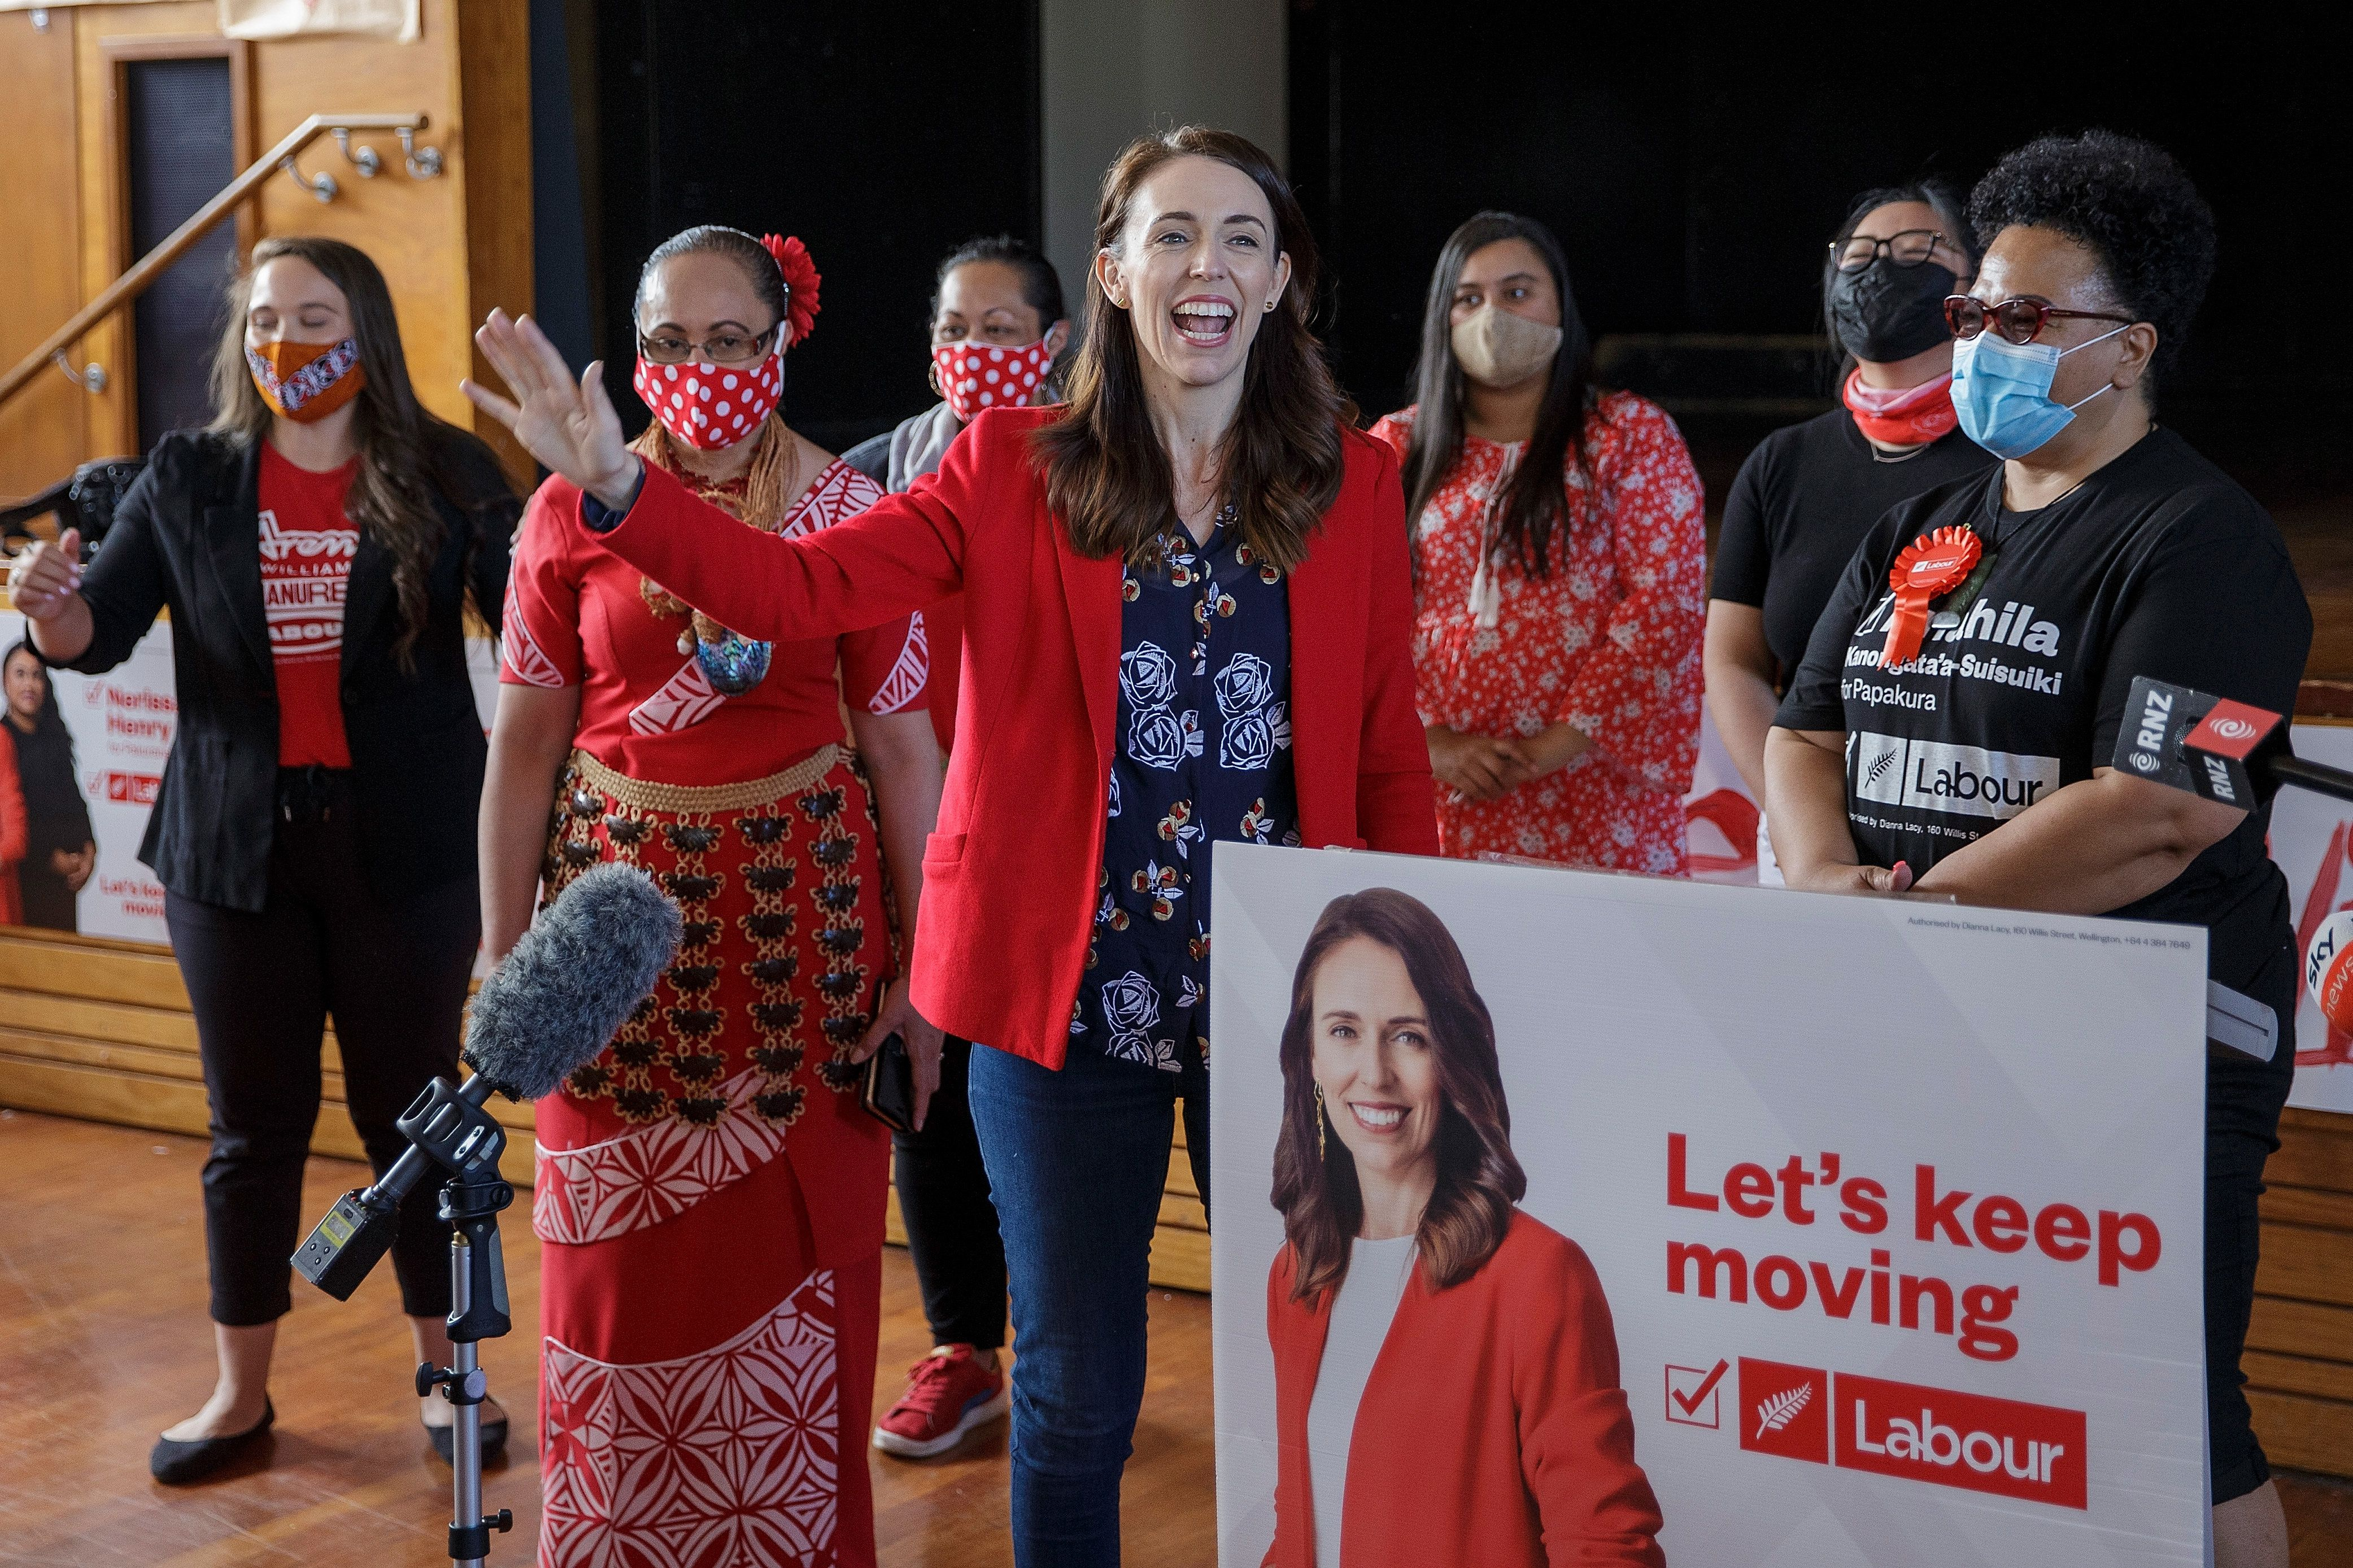 New Zealand Prime Minister Jacinda Ardern visits a NZ Labour Party South Auckland Get Out The Vote event on October 3, 2020